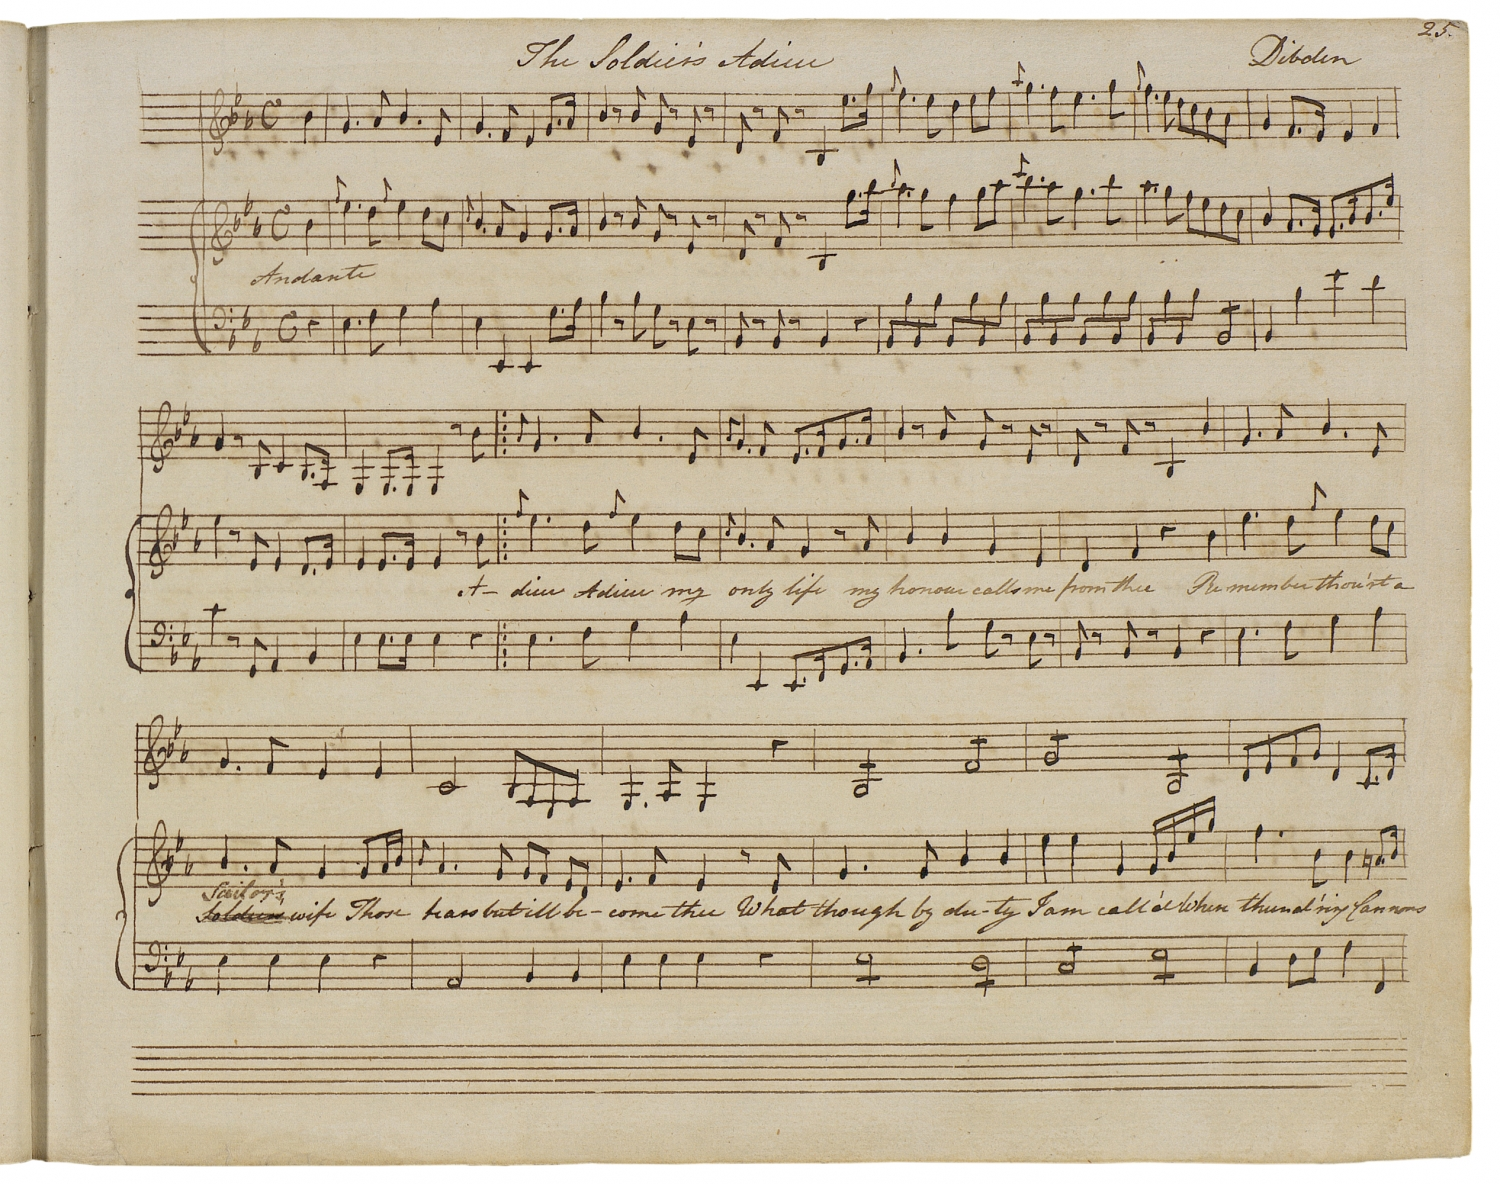 Page of handwritten music.